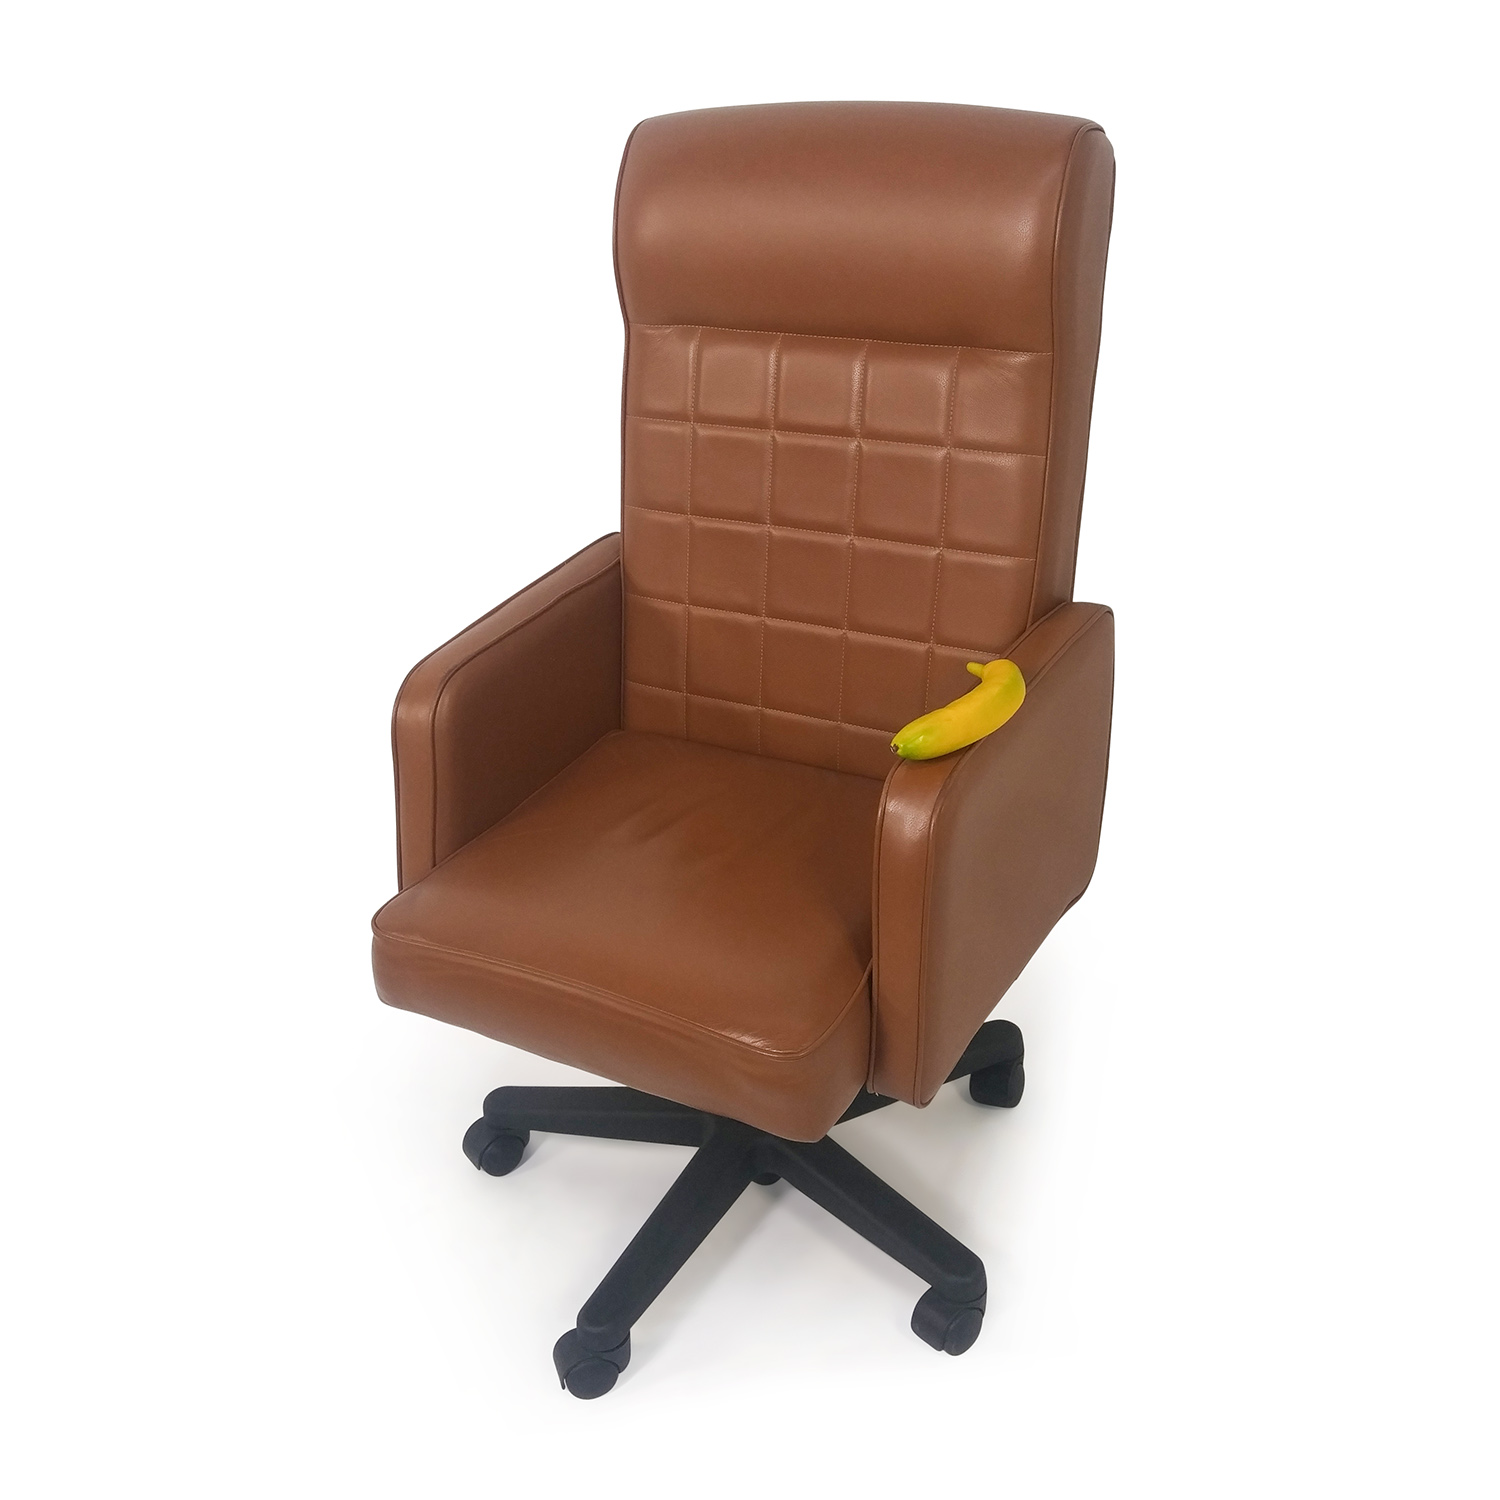 leather executive chair small chairs for toddlers 90 off